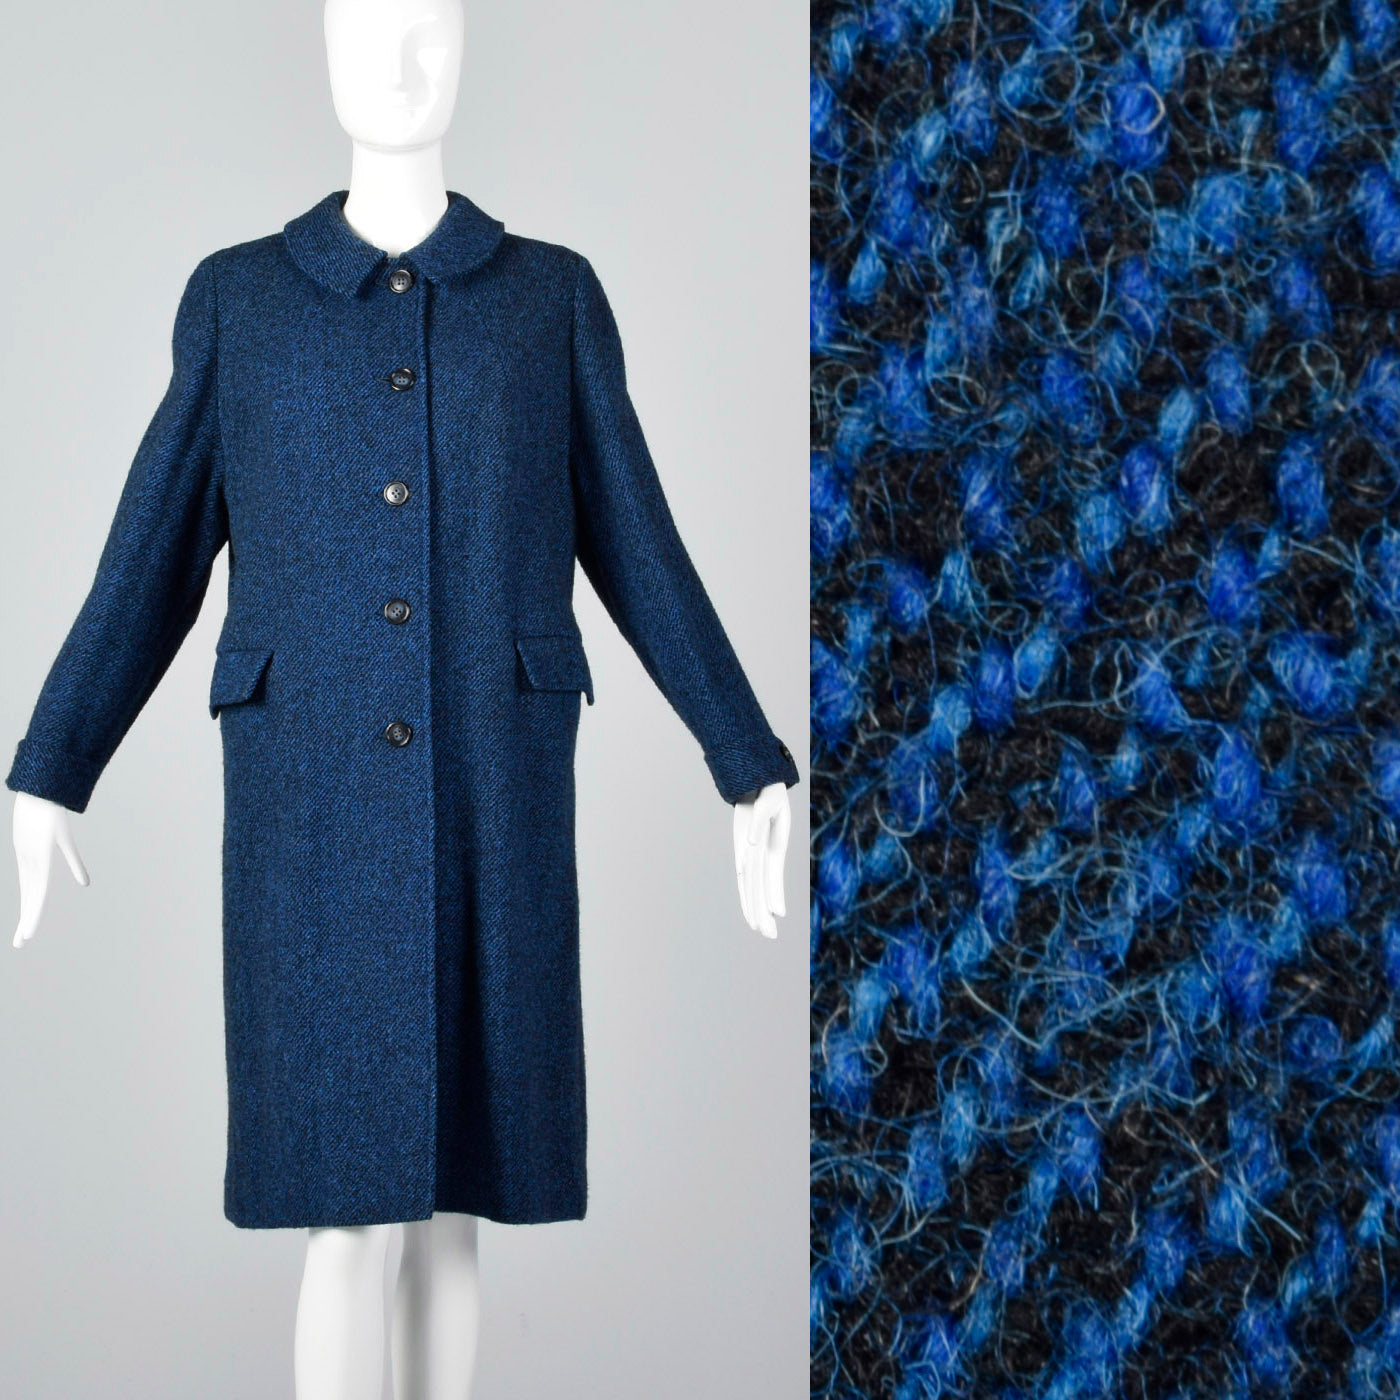 1950s Blue and Black Tweed Coat